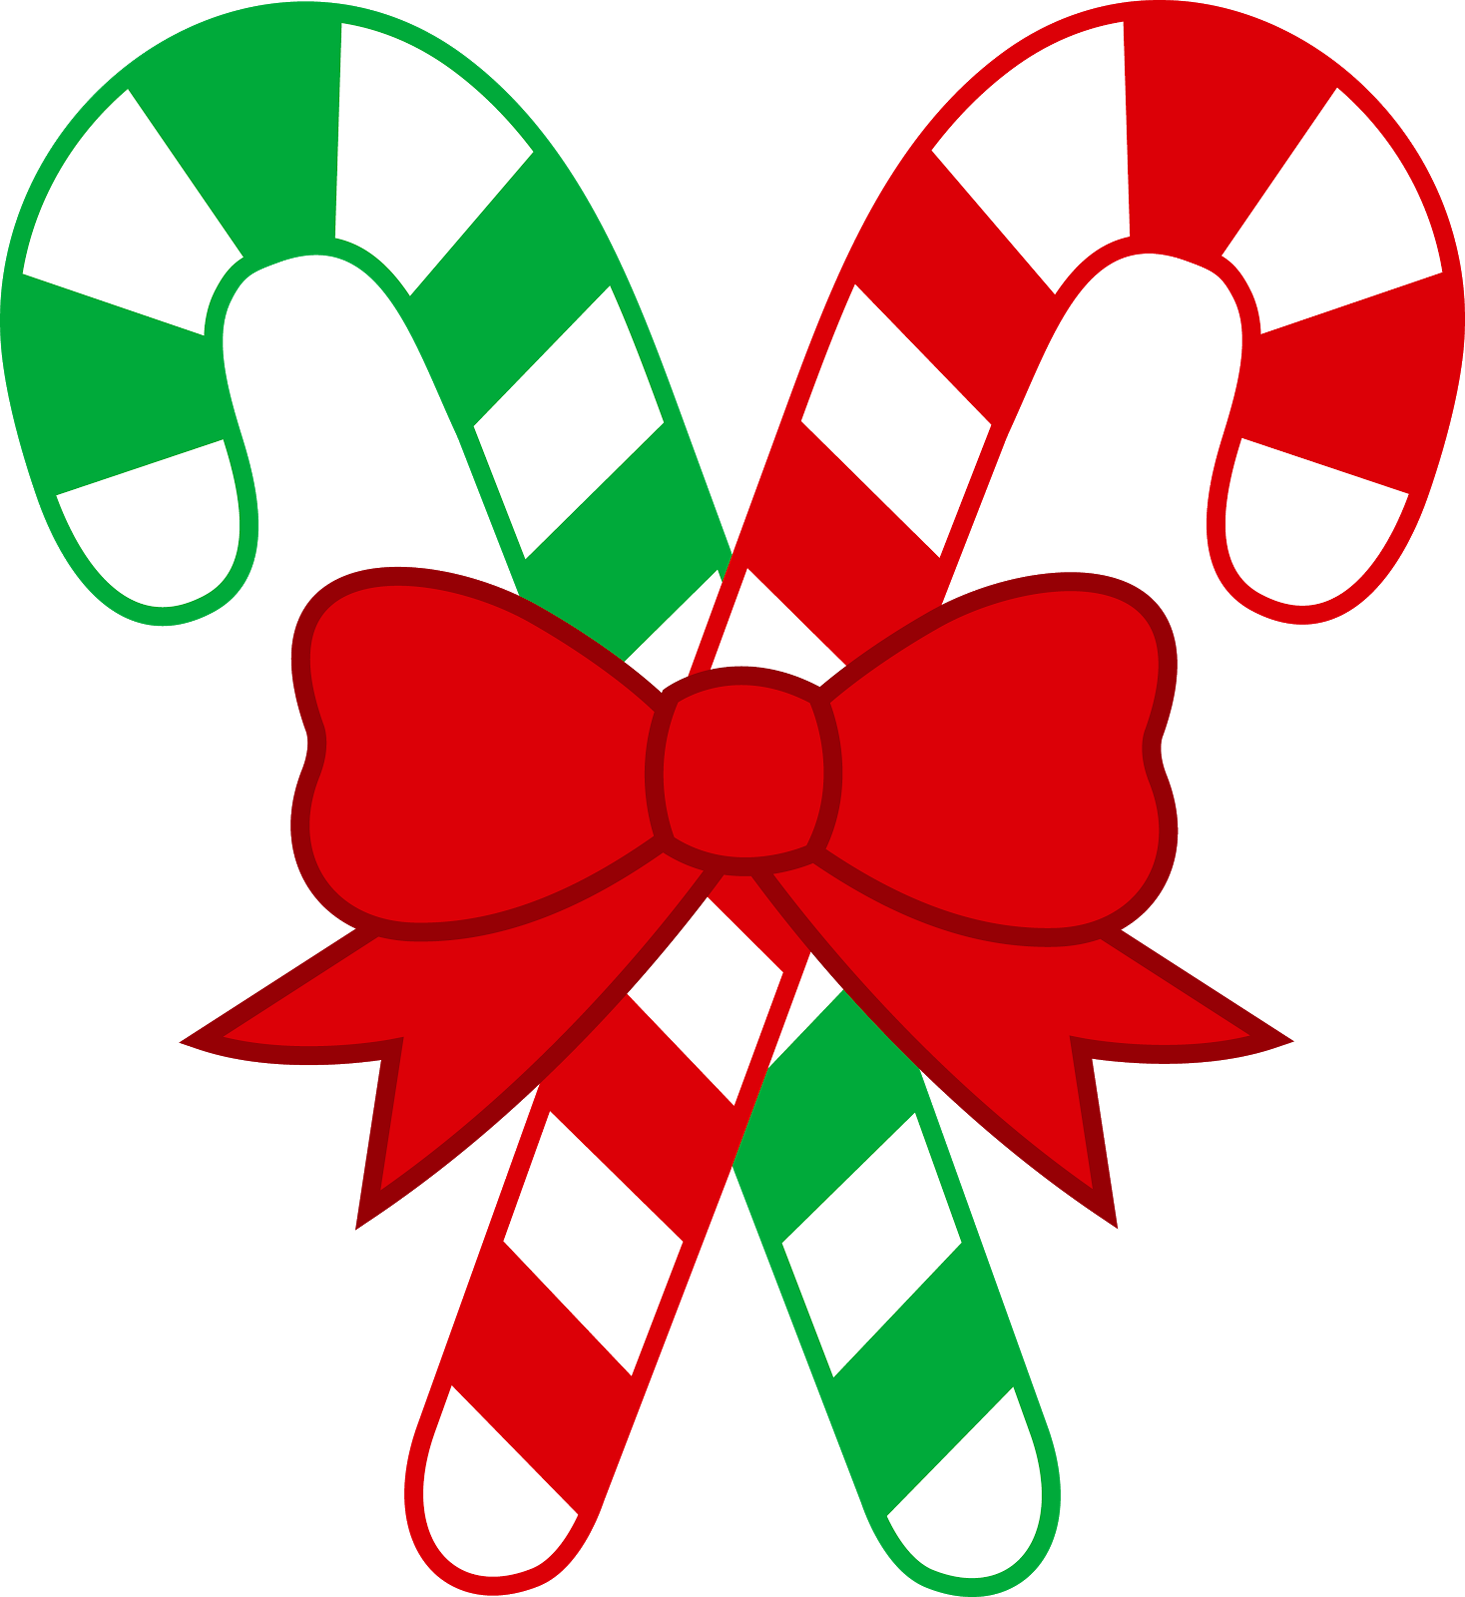 Free Candy Cane Clipart Public Domain Ch-Free candy cane clipart public domain christmas clip art images 2-16